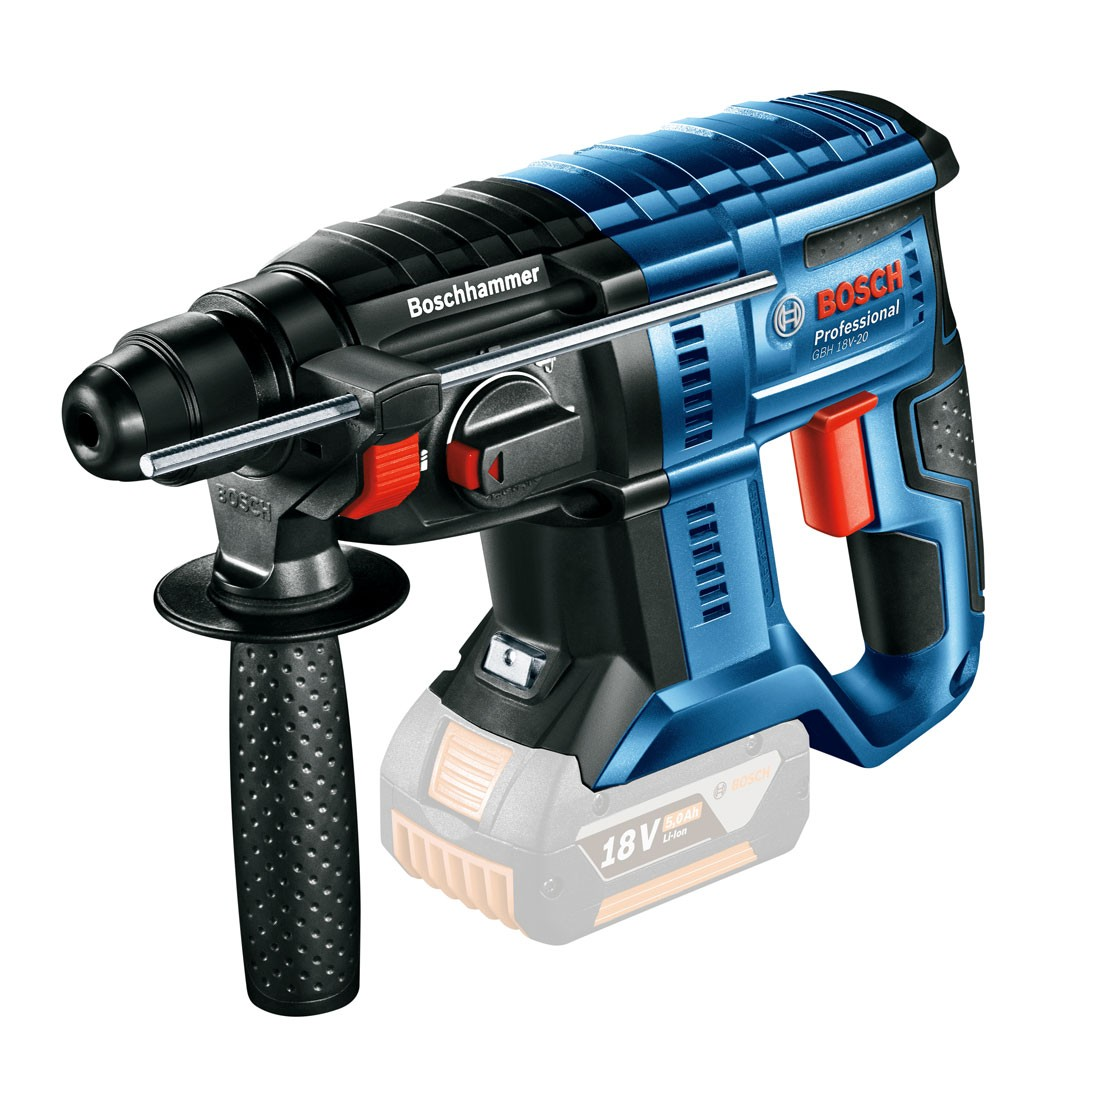 bosch gbh 18 v 20 sds plus cordless rotary hammer body only 0611911000 powertool world. Black Bedroom Furniture Sets. Home Design Ideas